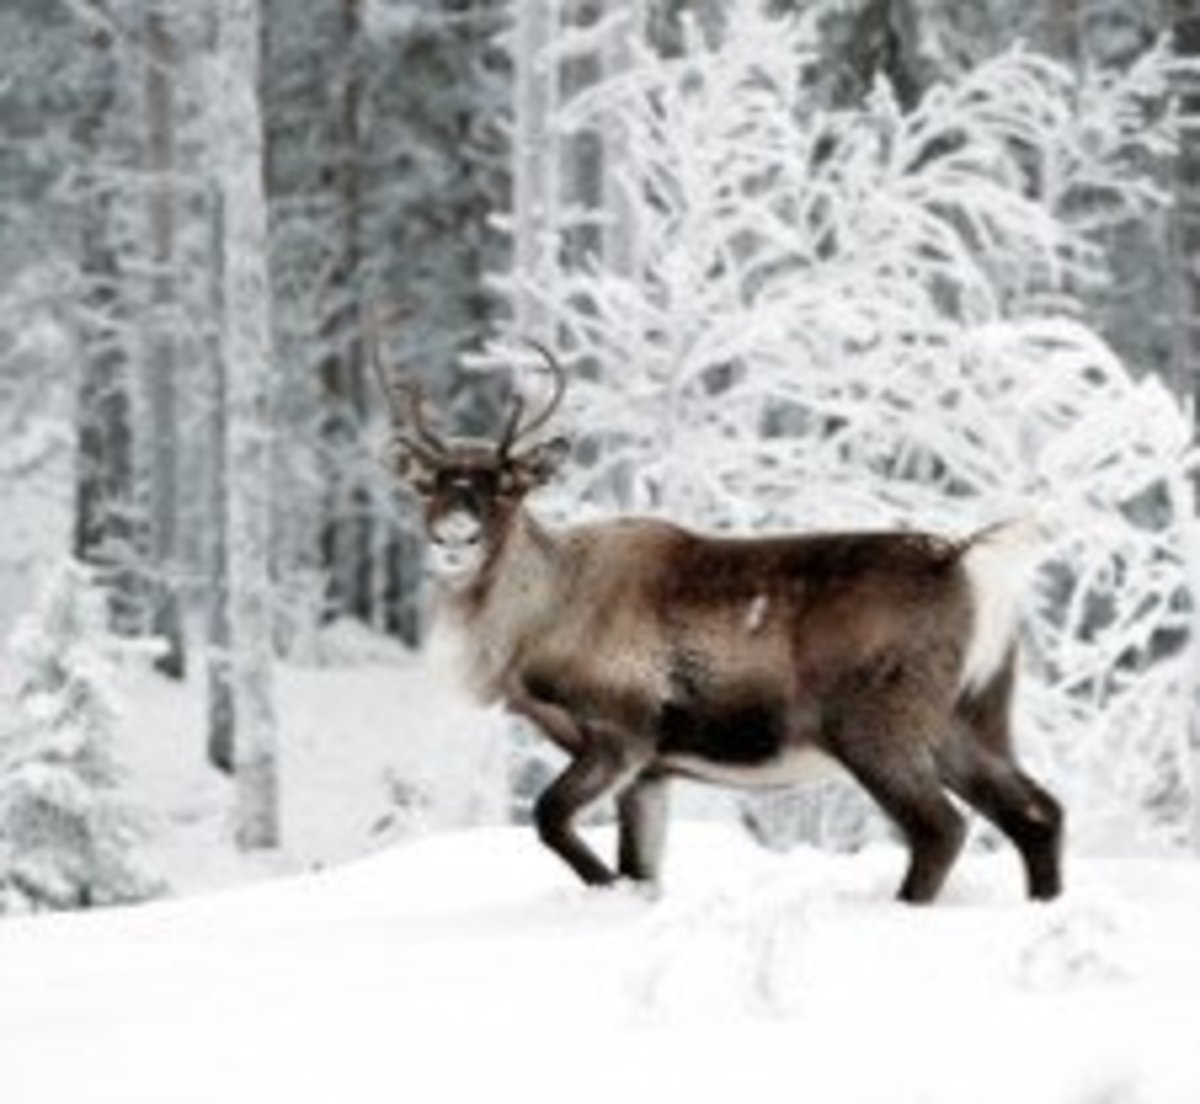 Reindeer live in coldest regions of the world.